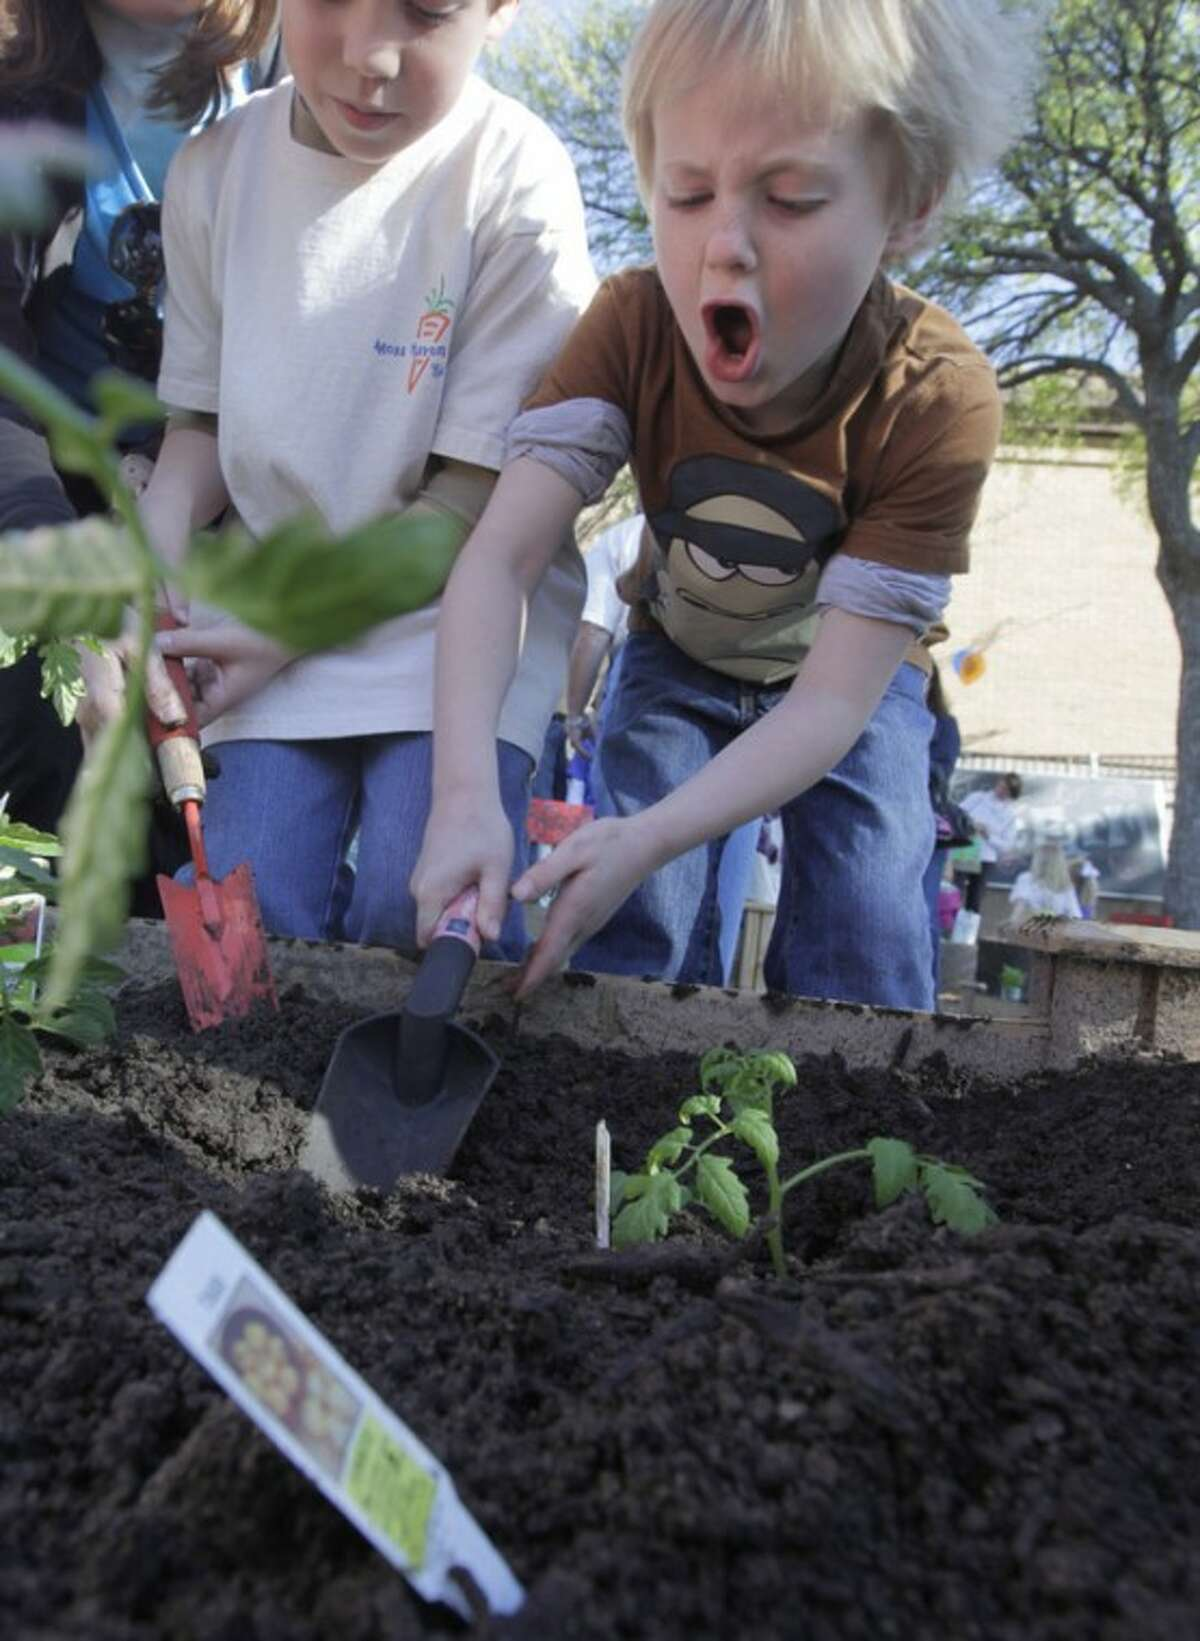 In this photo taken on March 27, 2012, elementary students plant vegetables in a garden at Moss Haven Elementary school in Dallas, T.X. Gardens planted in schoolyards nationally are intended to encourage healthier eating, and also teach young students about the environment, science, teamwork, math and leadership. (AP Photo/LM Otero)